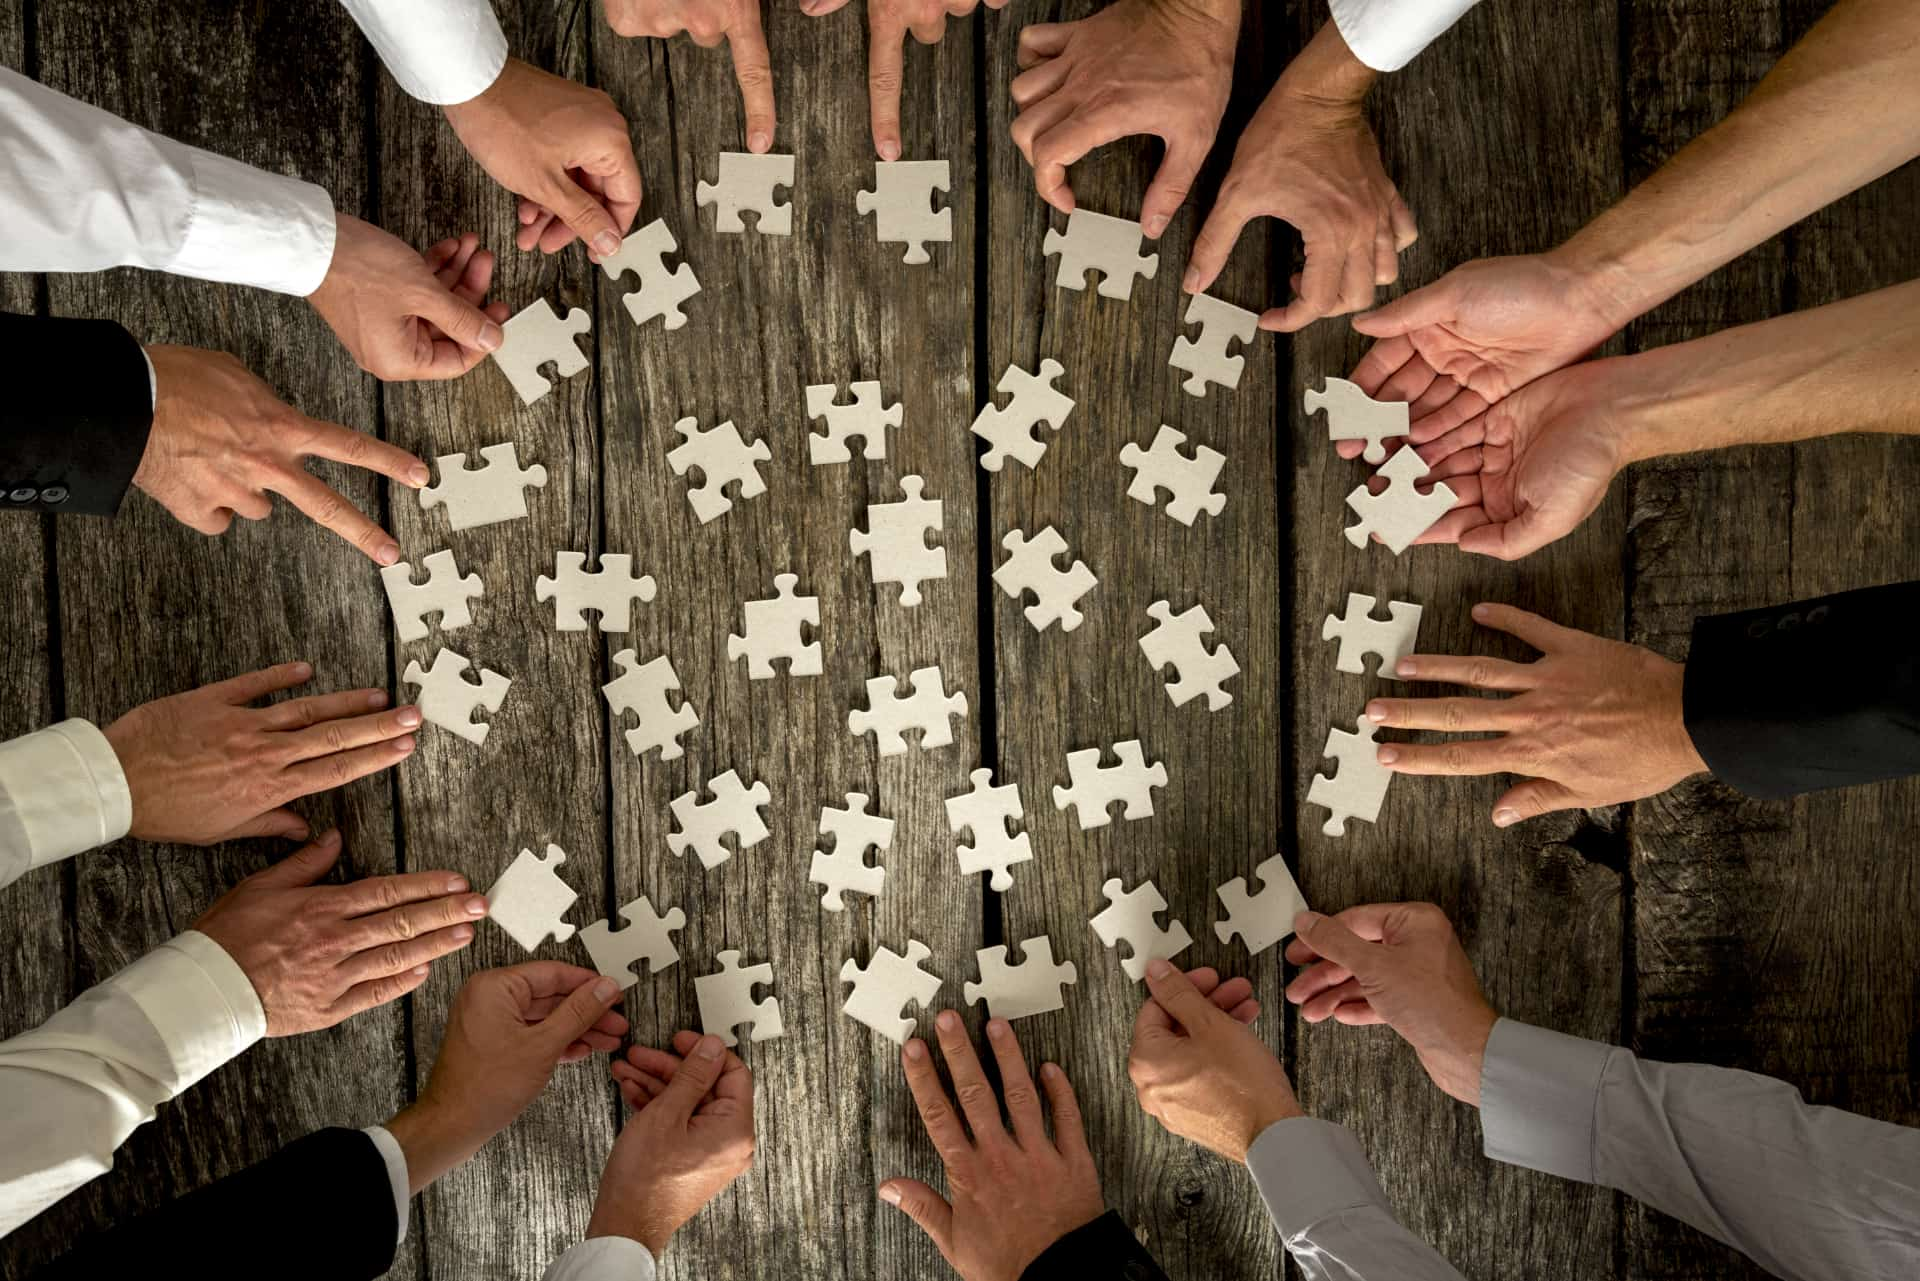 Hands Holding Puzzle Pieces on Table